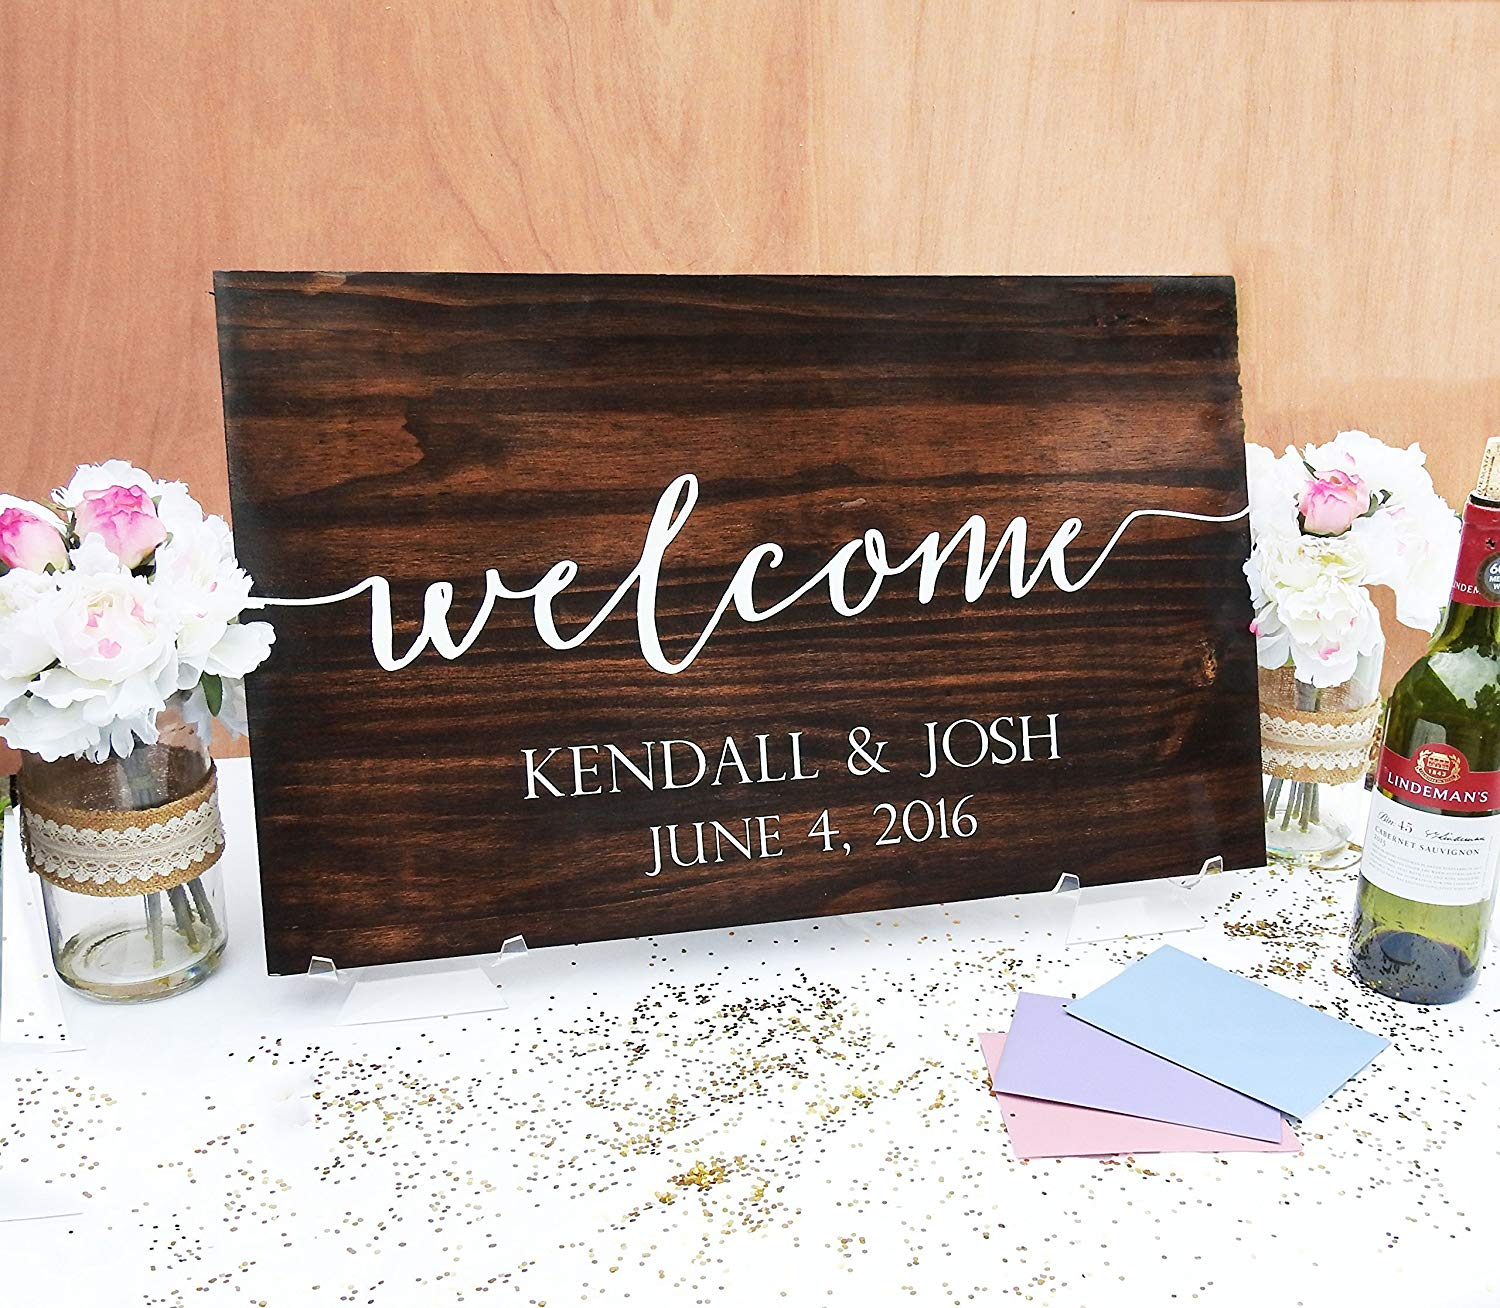 Welcome to Our Wedding Wood Sign, Wedding Sign, Wood sign, Wedding Wood Sign, Wooden Sign, Wedding, Handwritten, Typography, Wedding Decor .sign#172